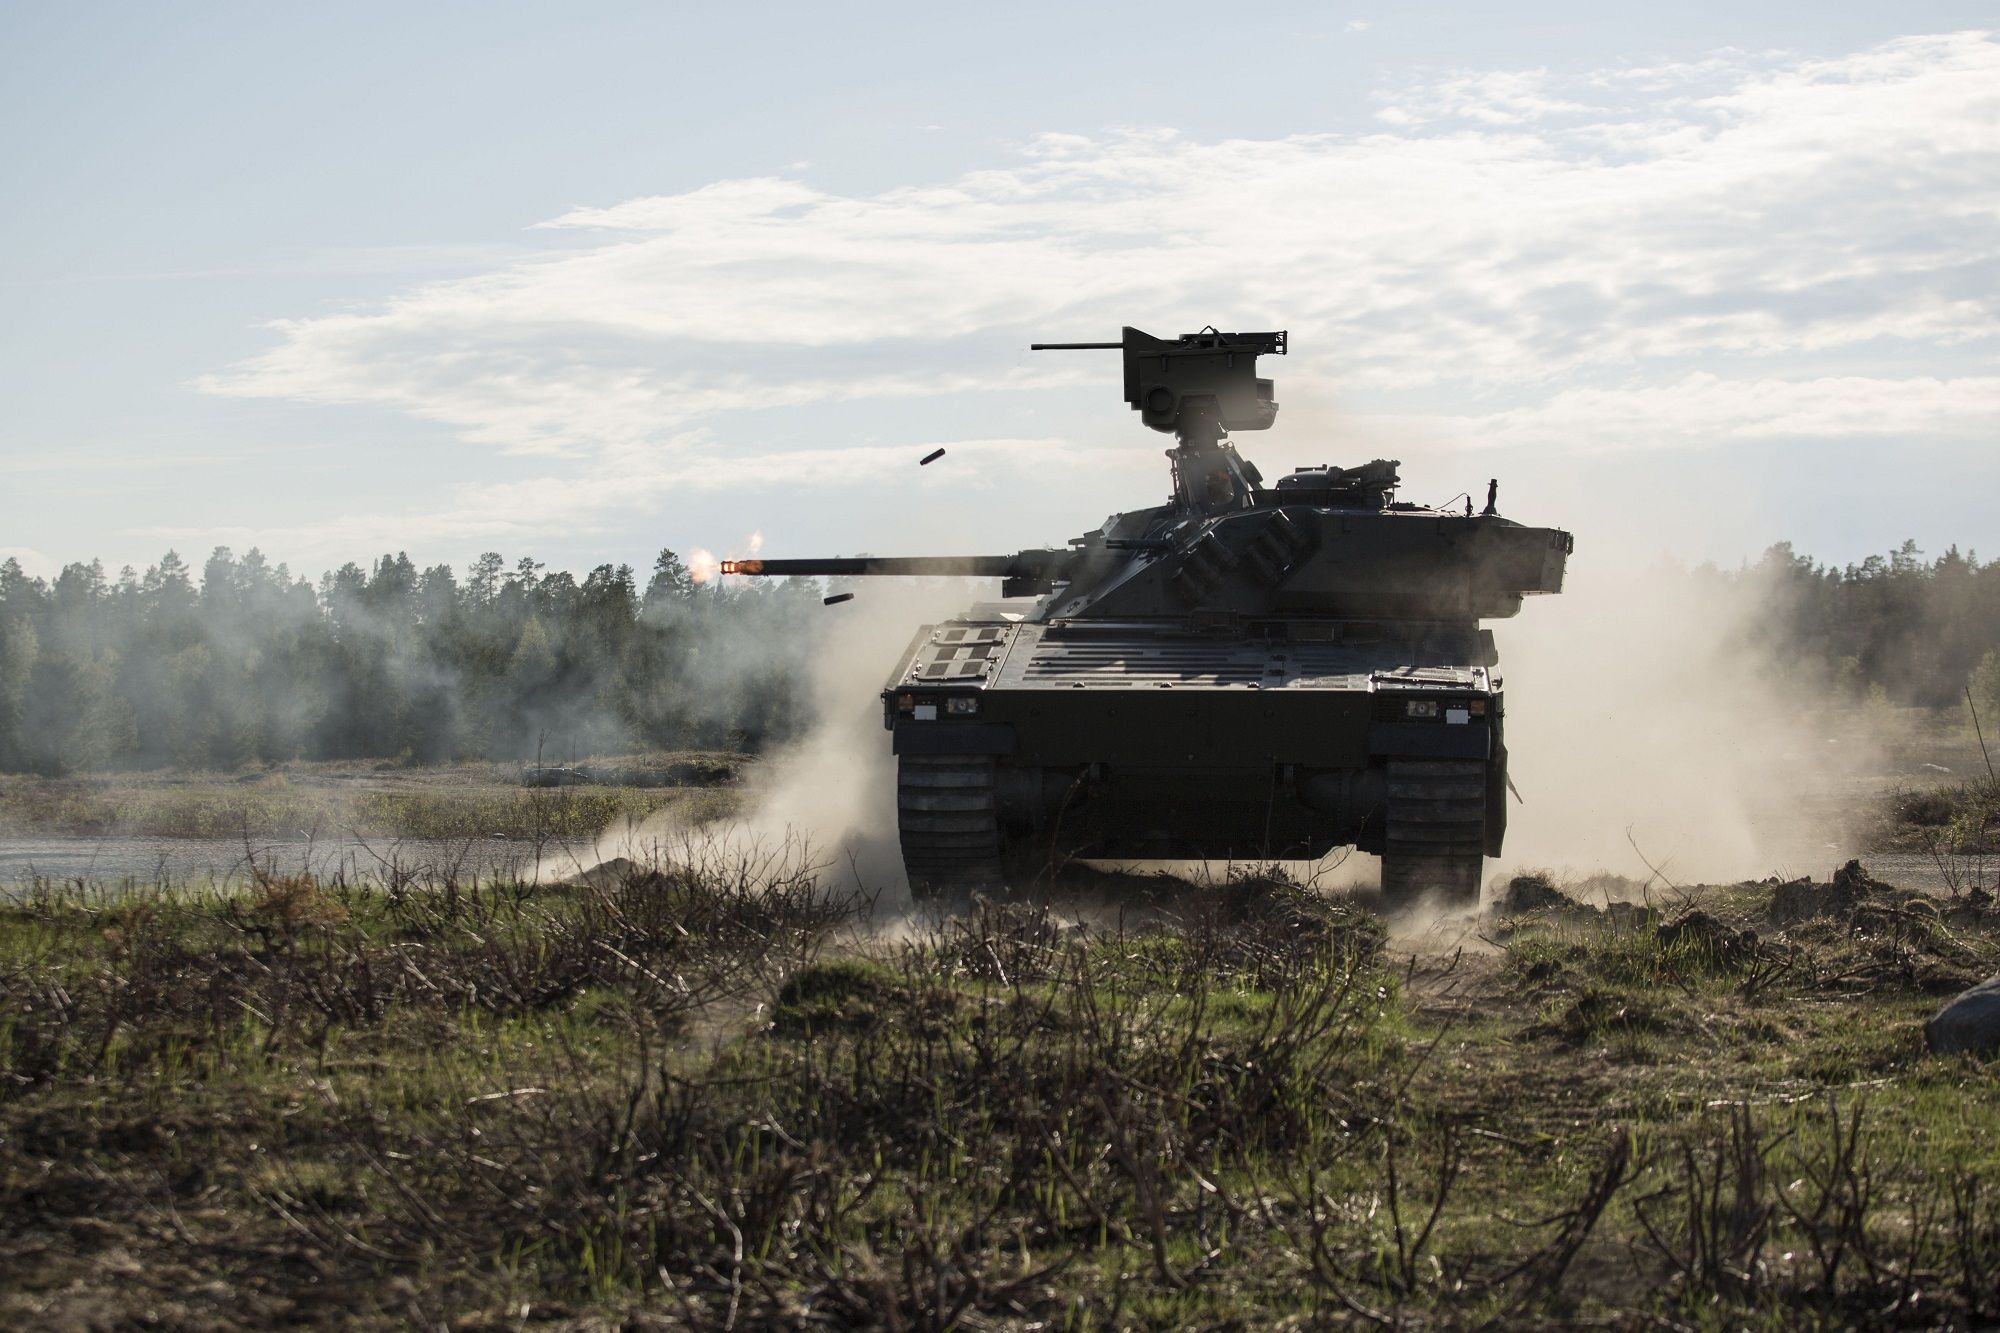 The US Army Next Generation Combat Vehicle – Optional Manned Fighting Vehicle (NGCV-OMFV) programme to replace the M2 BRADLEY IFV currently has three announced contenders, all of which are drawing from foreign designs.  The CV90 MkIV, shown with remote weapon station, is BAE Systems' offering, and has versions already in service with seven armies.  (Photo: BAE Systems)